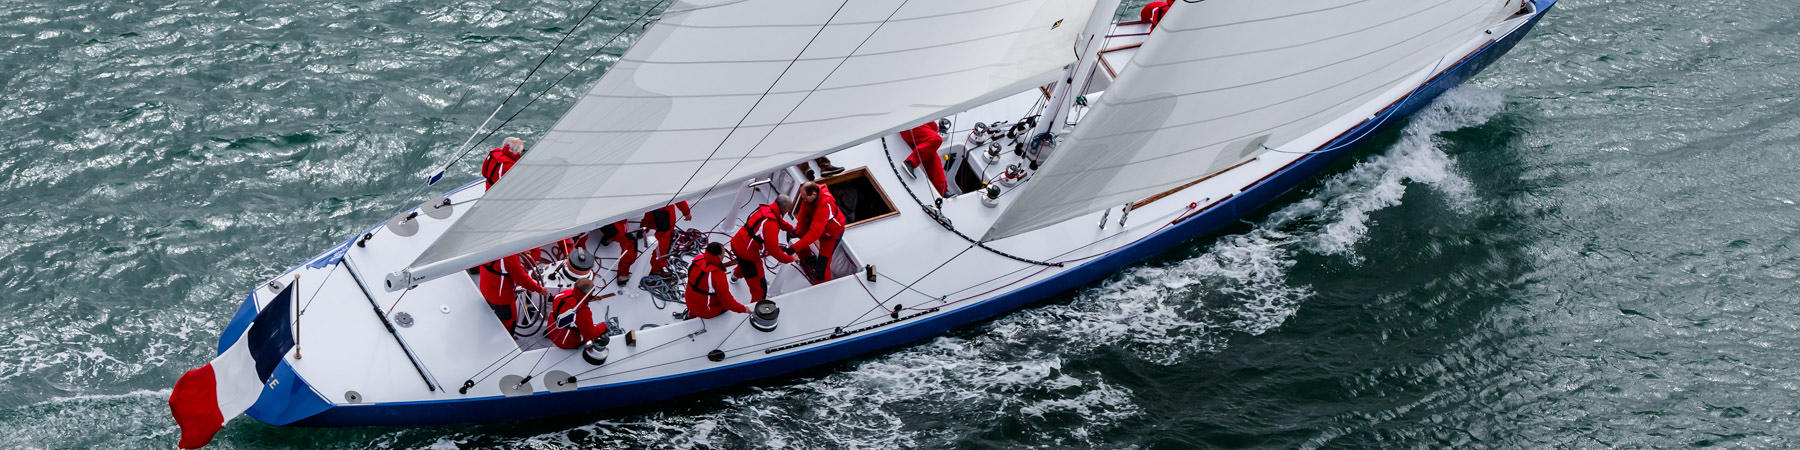 The reborn of 12 M JI France - Photo Plisson